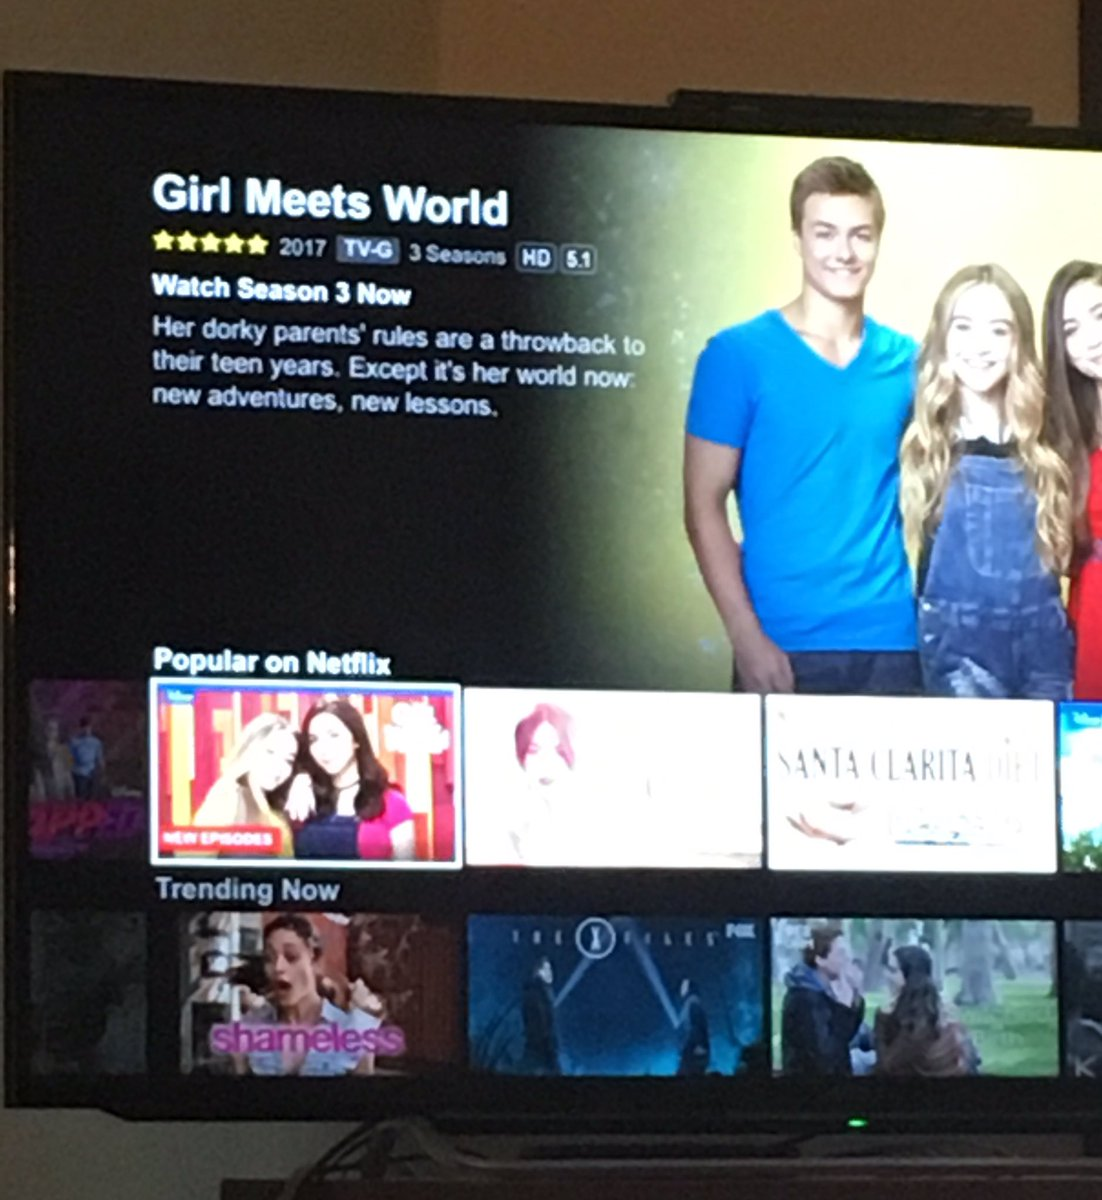 When will girl meets world be on netflix